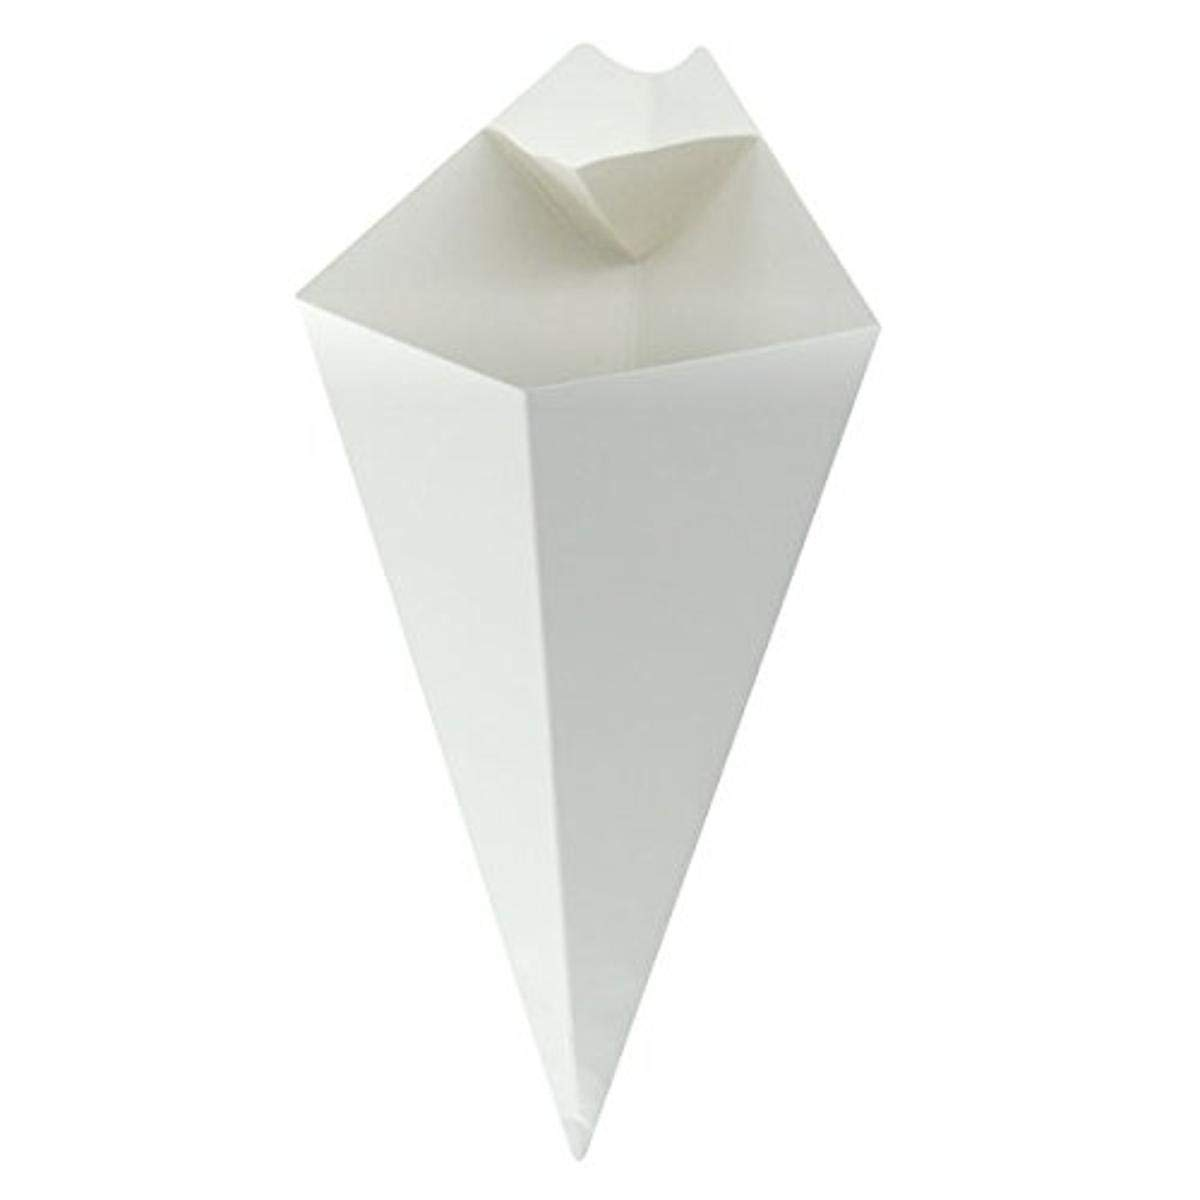 White Paper Cones with Dipping Sauce Compartment (Case of 25), PacknWood - Disposable Appetizer Food Cups (6.57